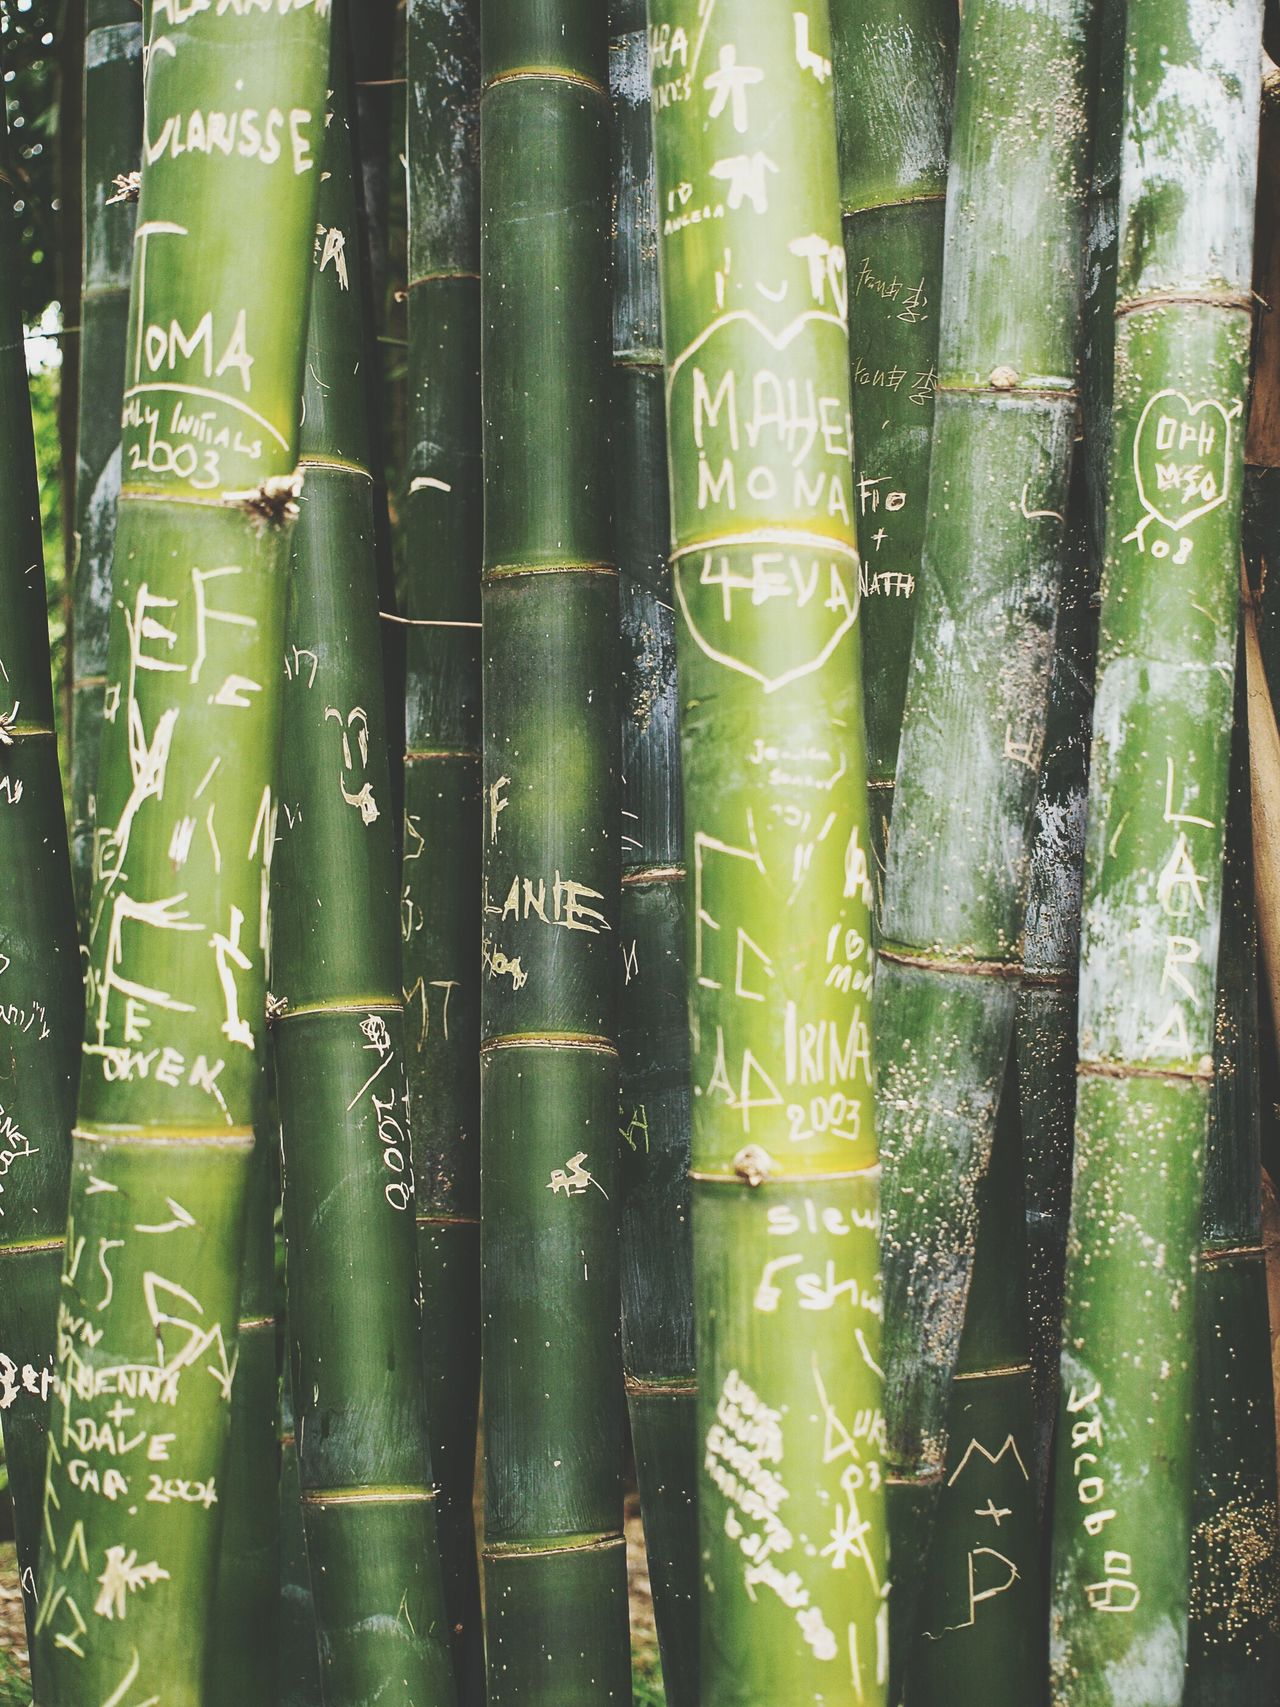 Green Bamboo Bambus Love Lyrics Message Wallpaper Vertical Nature Memories ❤ Memorial Sydney Australia In Love Don't Forget Me